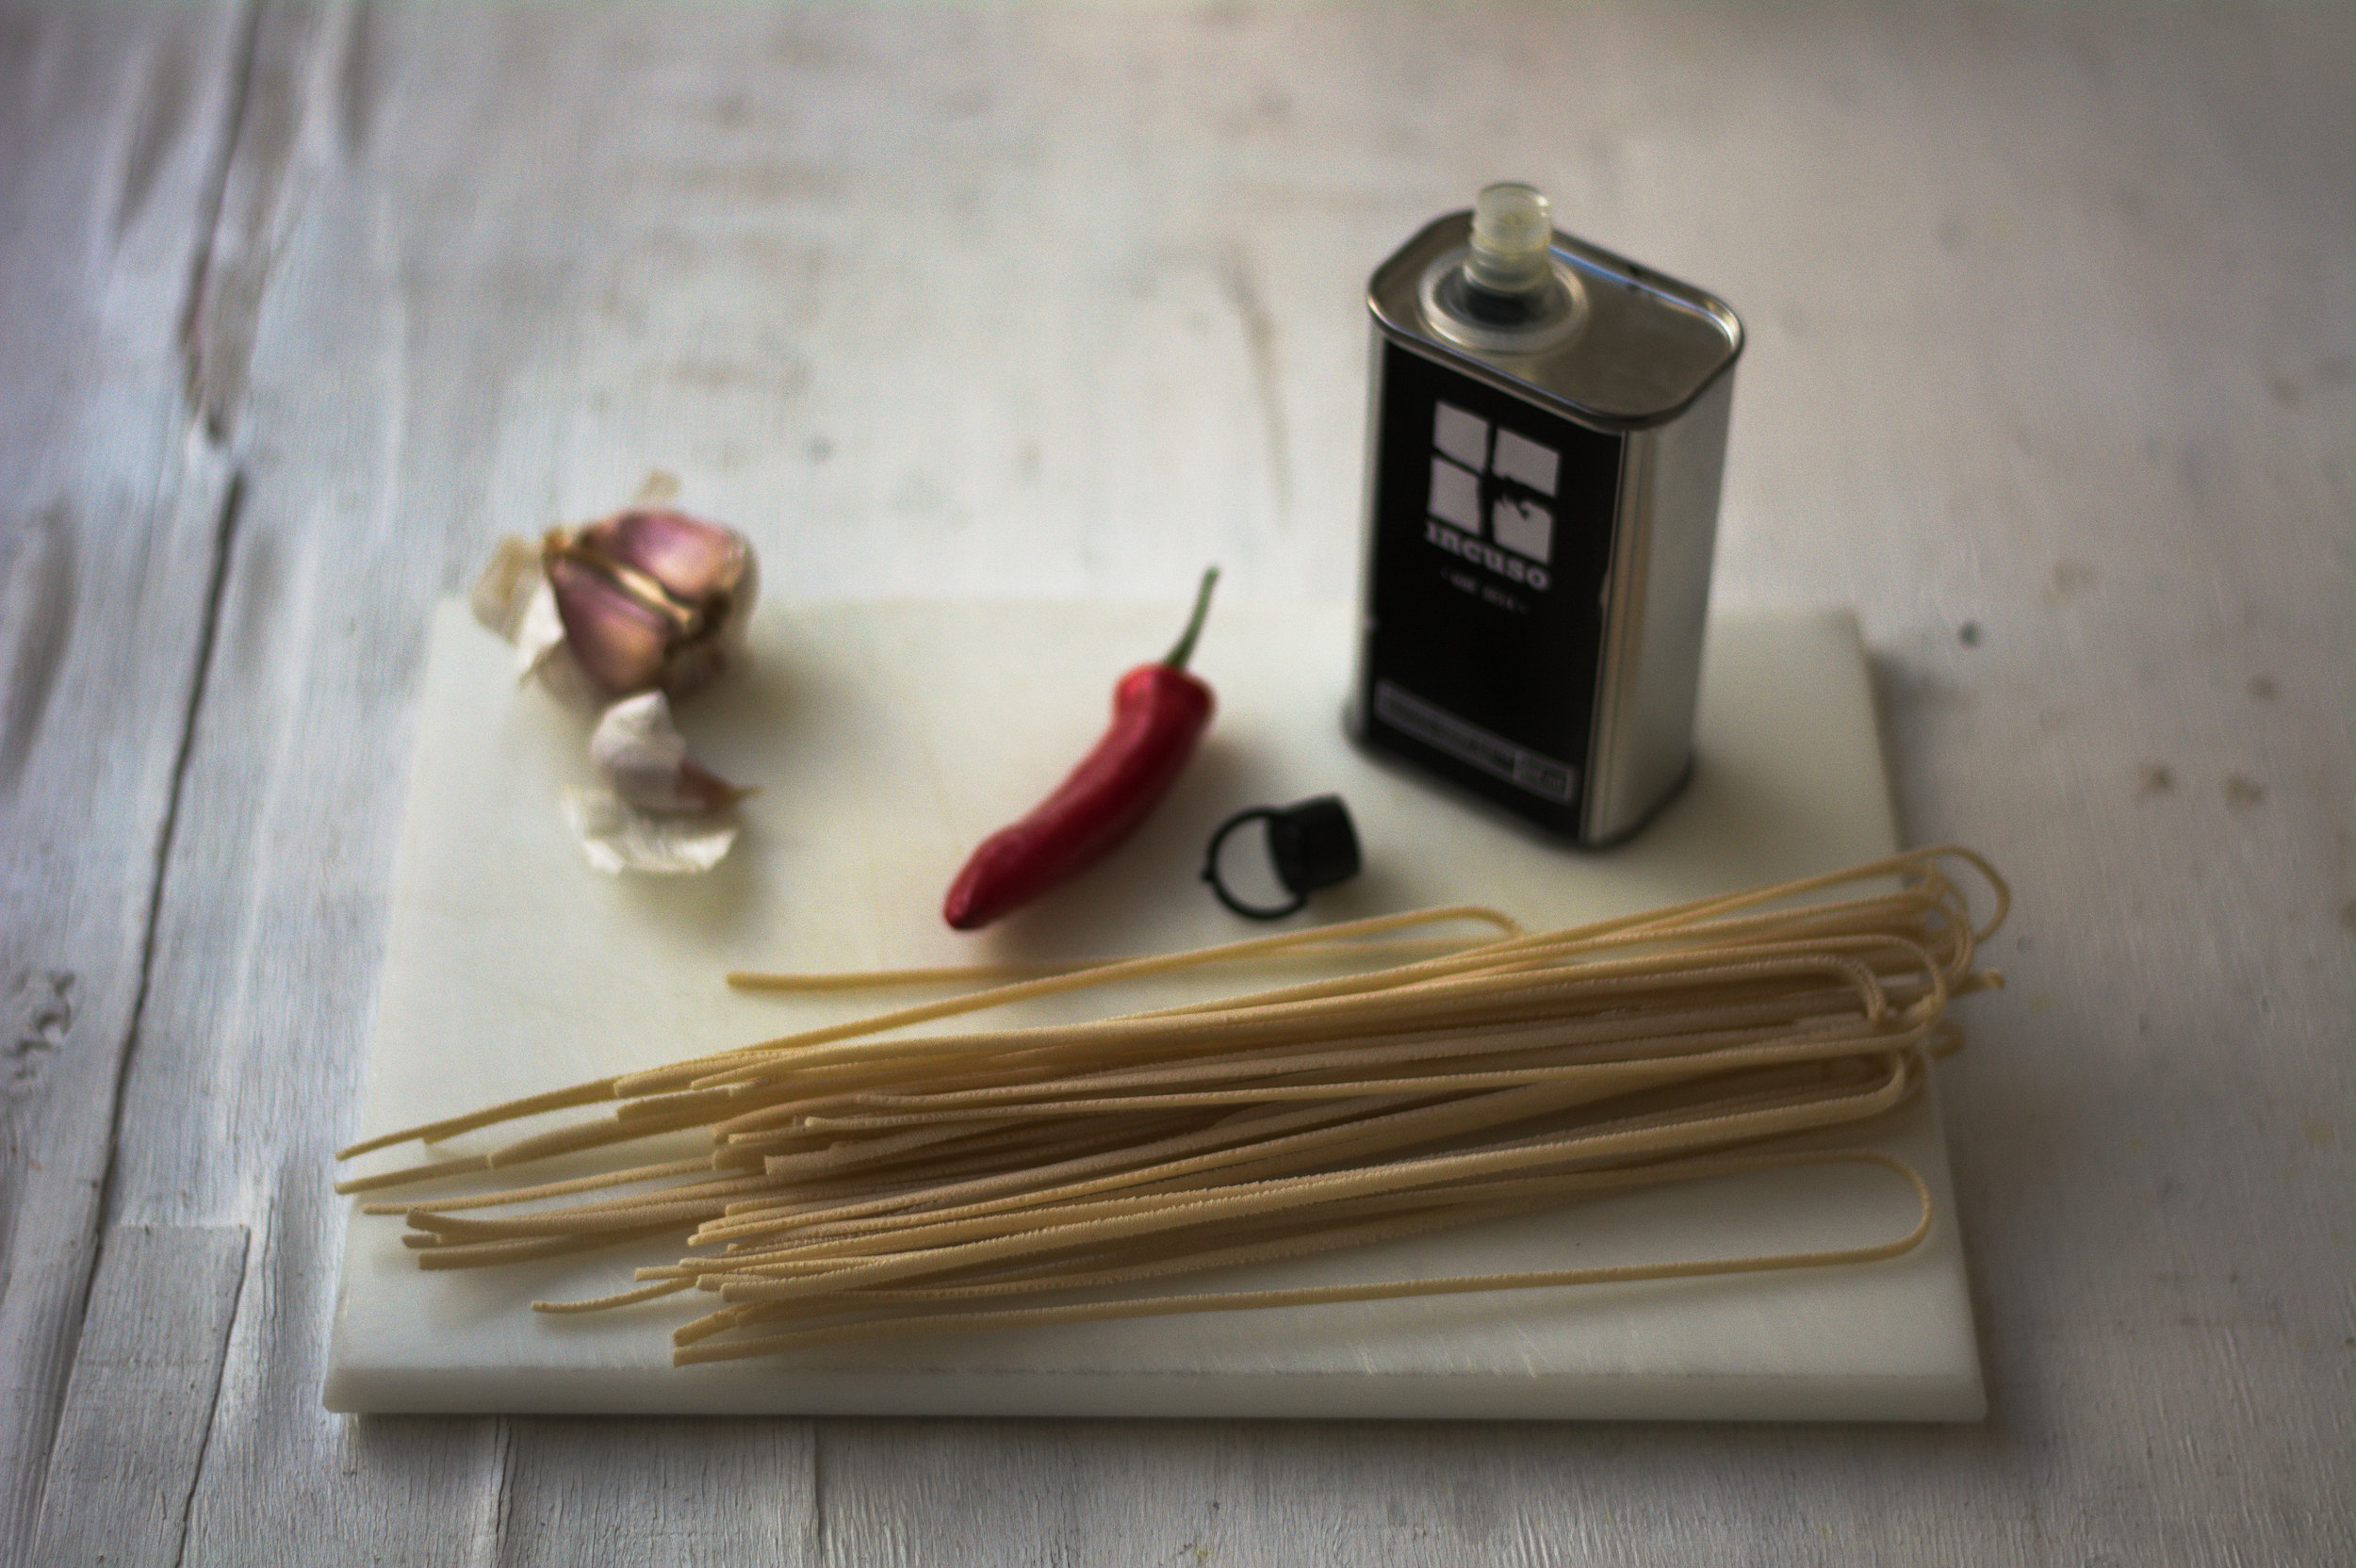 aglio-olio-ingredients.jpg